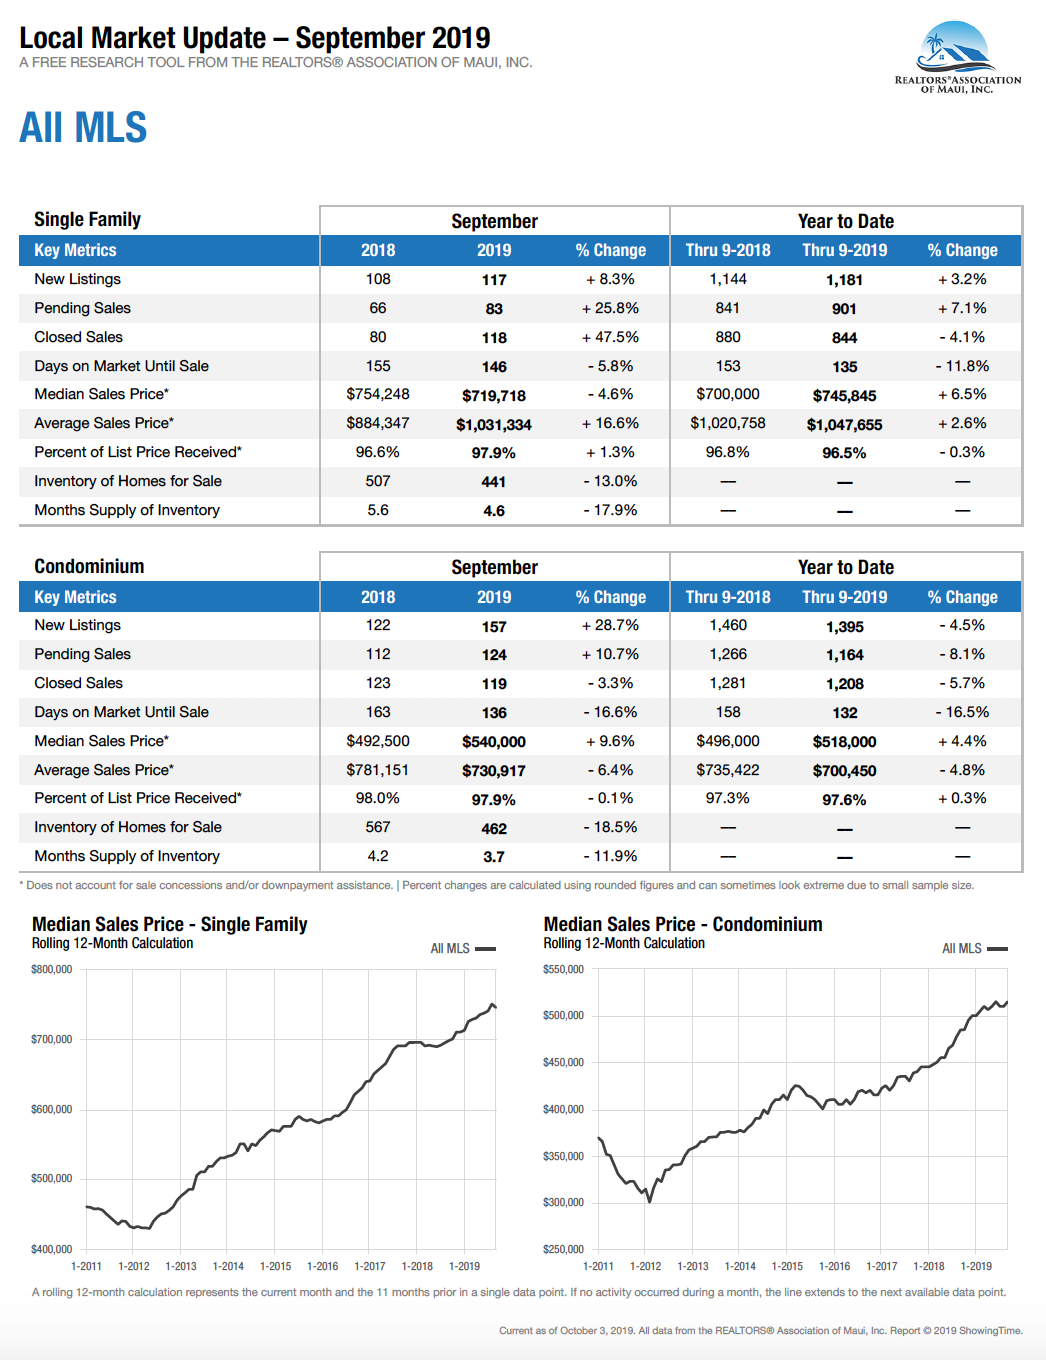 Maui Hawaii homes and condominium sales stats for September 2019.